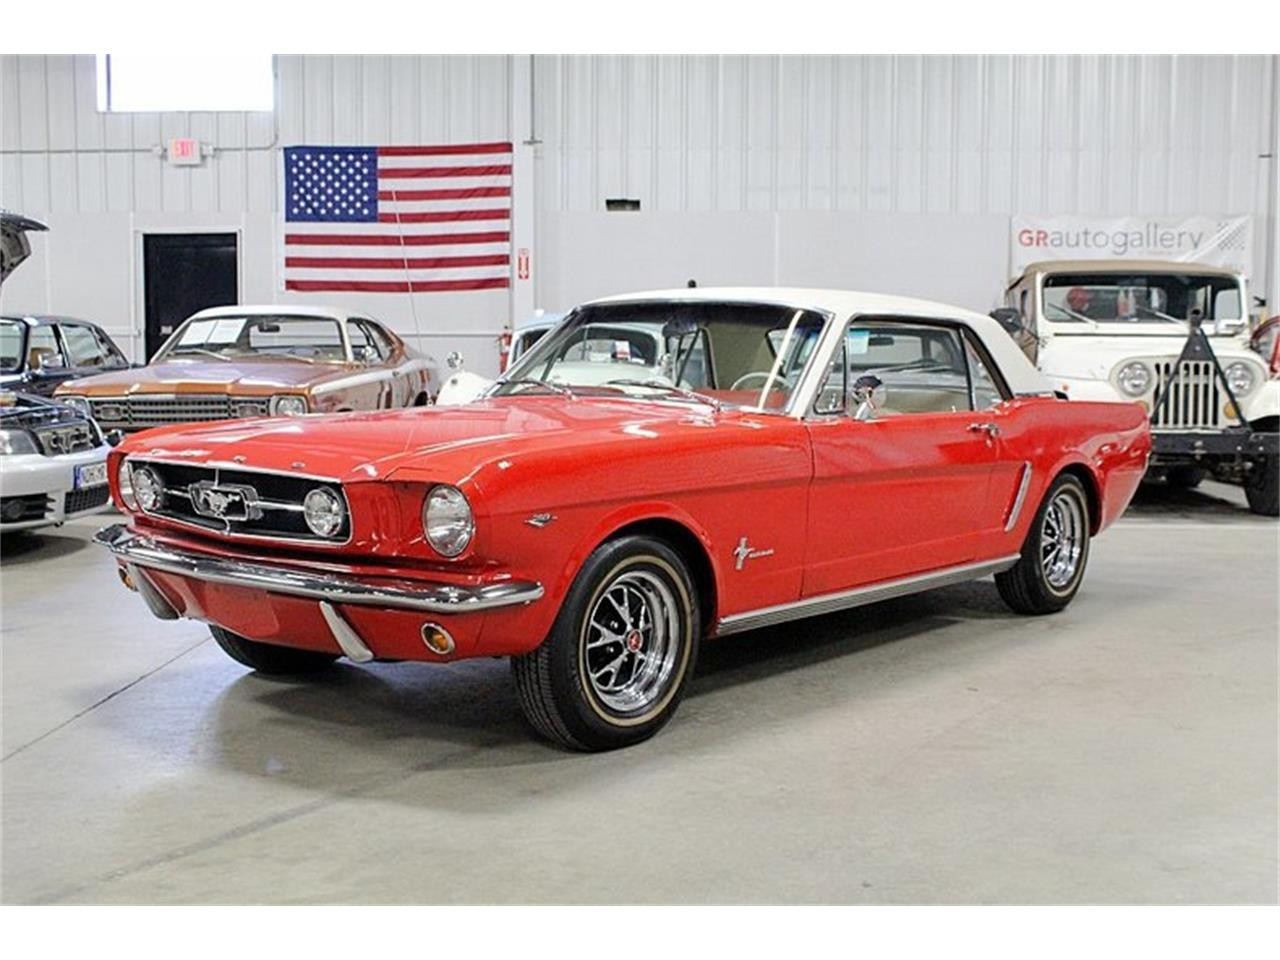 Large picture of classic 65 ford mustang 19900 00 offered by gr auto gallery